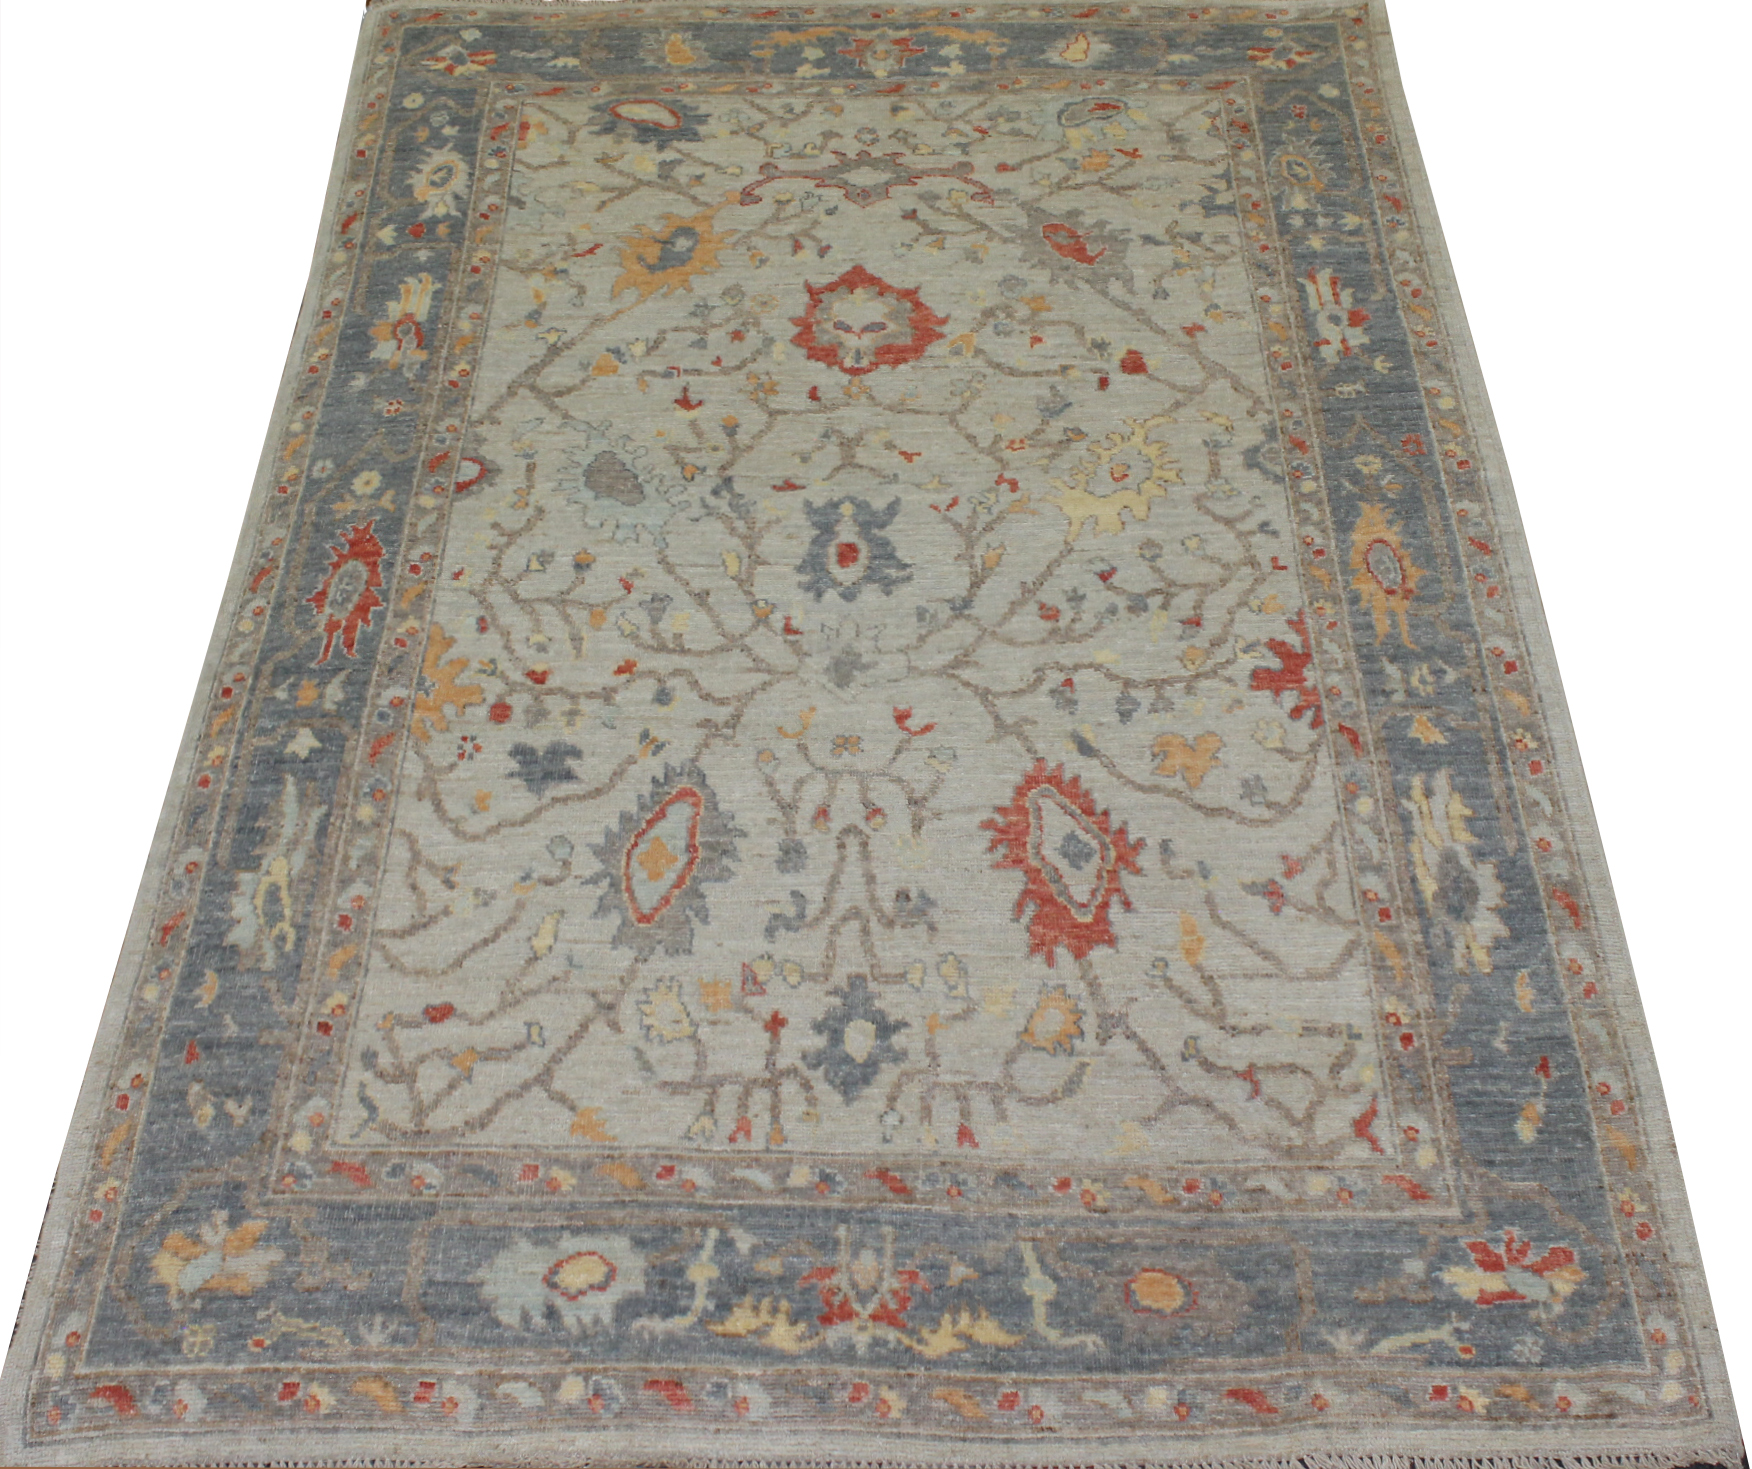 6x9 Oushak Hand Knotted Wool Area Rug - MR023723